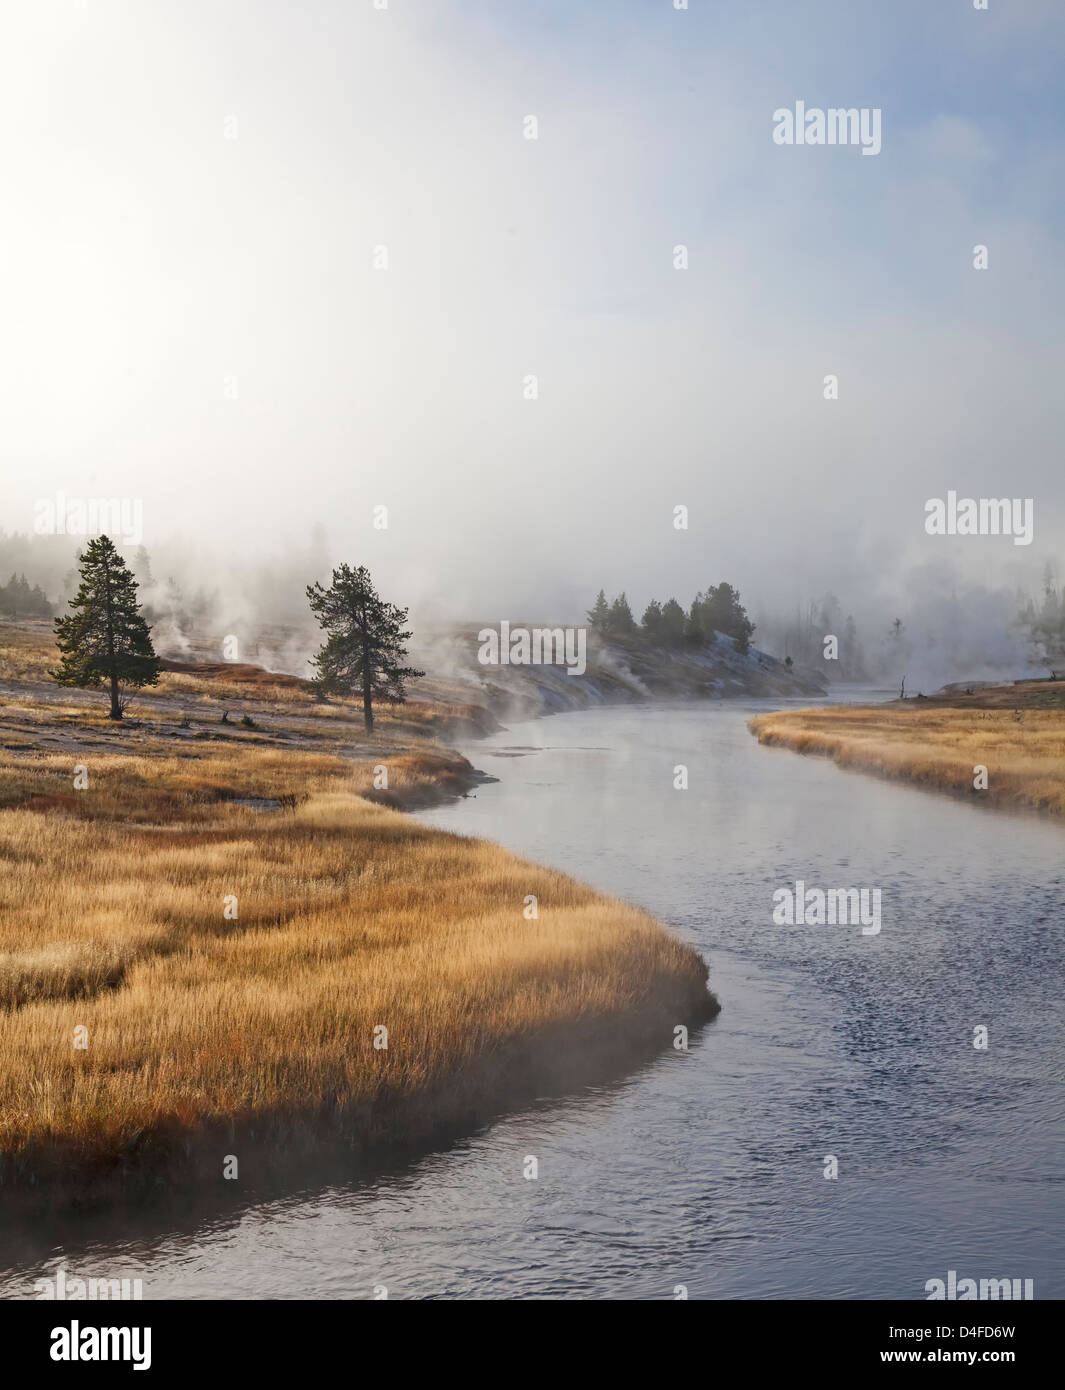 River winding through rural landscape - Stock Image